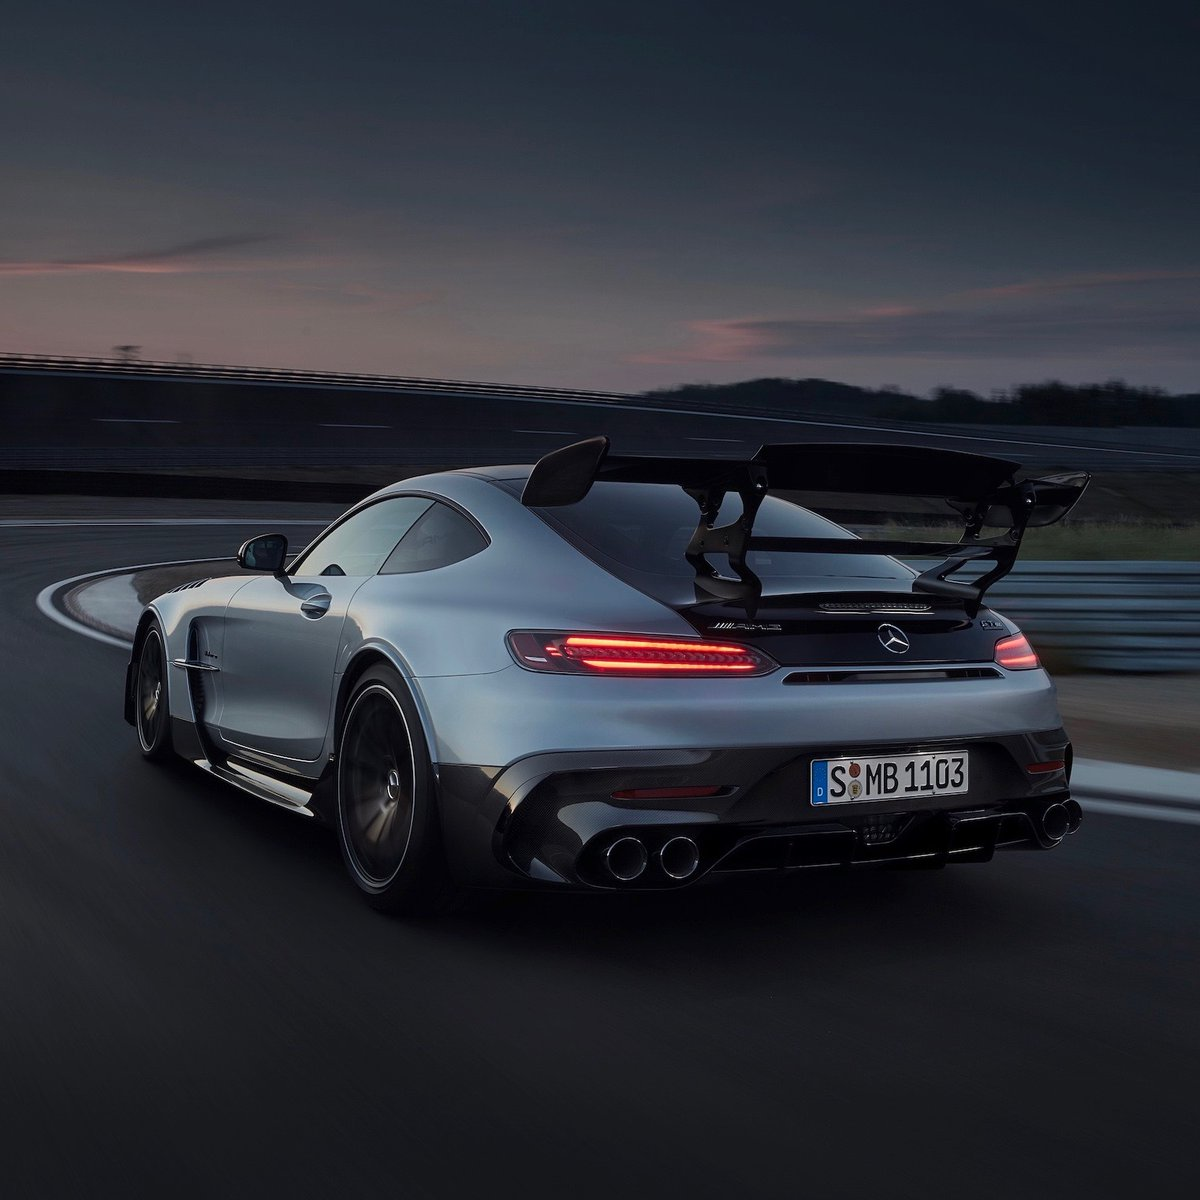 [Kraftstoffverbrauch kombiniert: 12,8 l/100 km CO₂-Emissionen kombiniert: 292 g/km | https://t.co/s95yKNytGO | Mercedes-AMG GT Black Series]  Perfectly embodying the AMG racing spirit inside and out with a powerful engine and a bold design to match.   https://t.co/KqSeWDcaN1 https://t.co/087qX0I4YJ